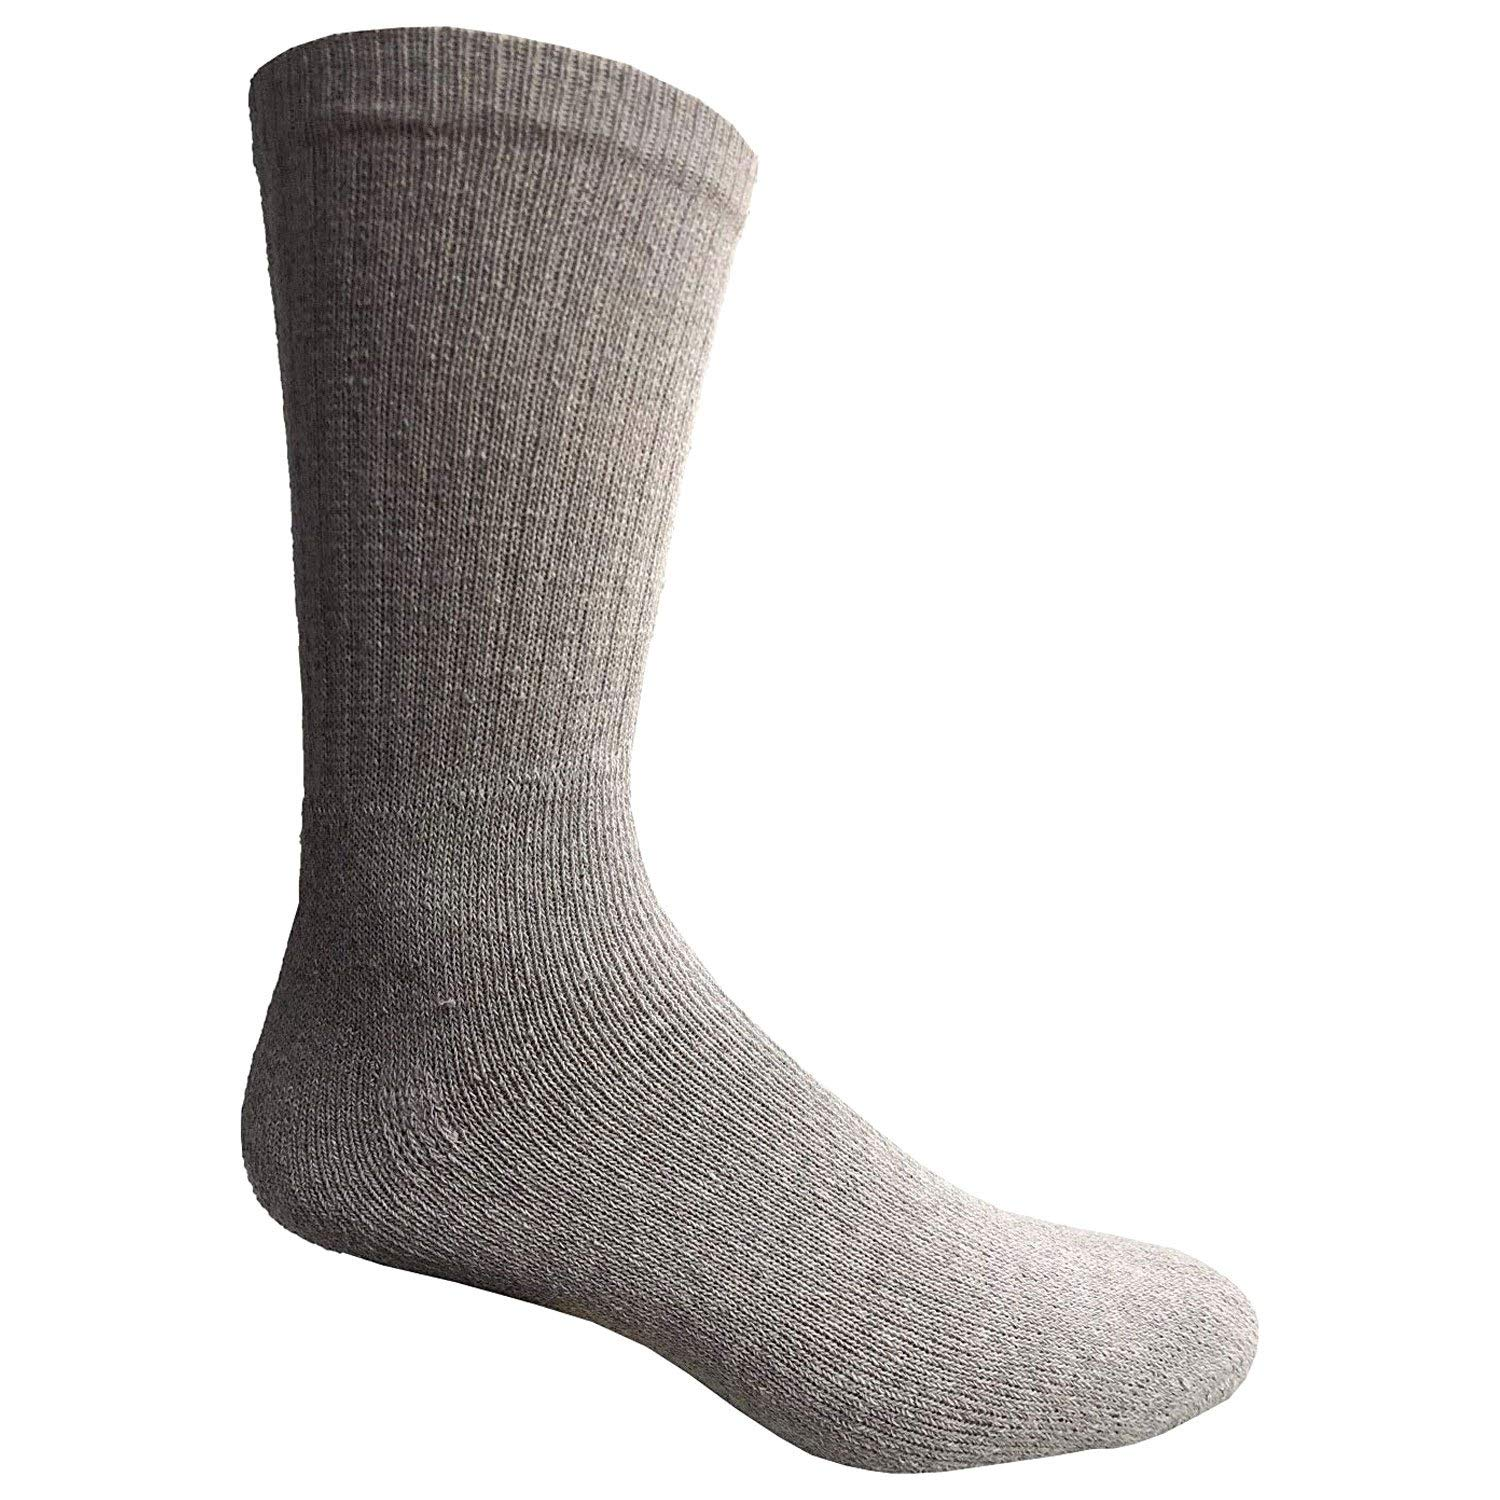 Men's King Size Cotton Crew Sock Plus Size Athletic Socks Men 13-16 Gray 120 pc by All Time Trading (Image #1)